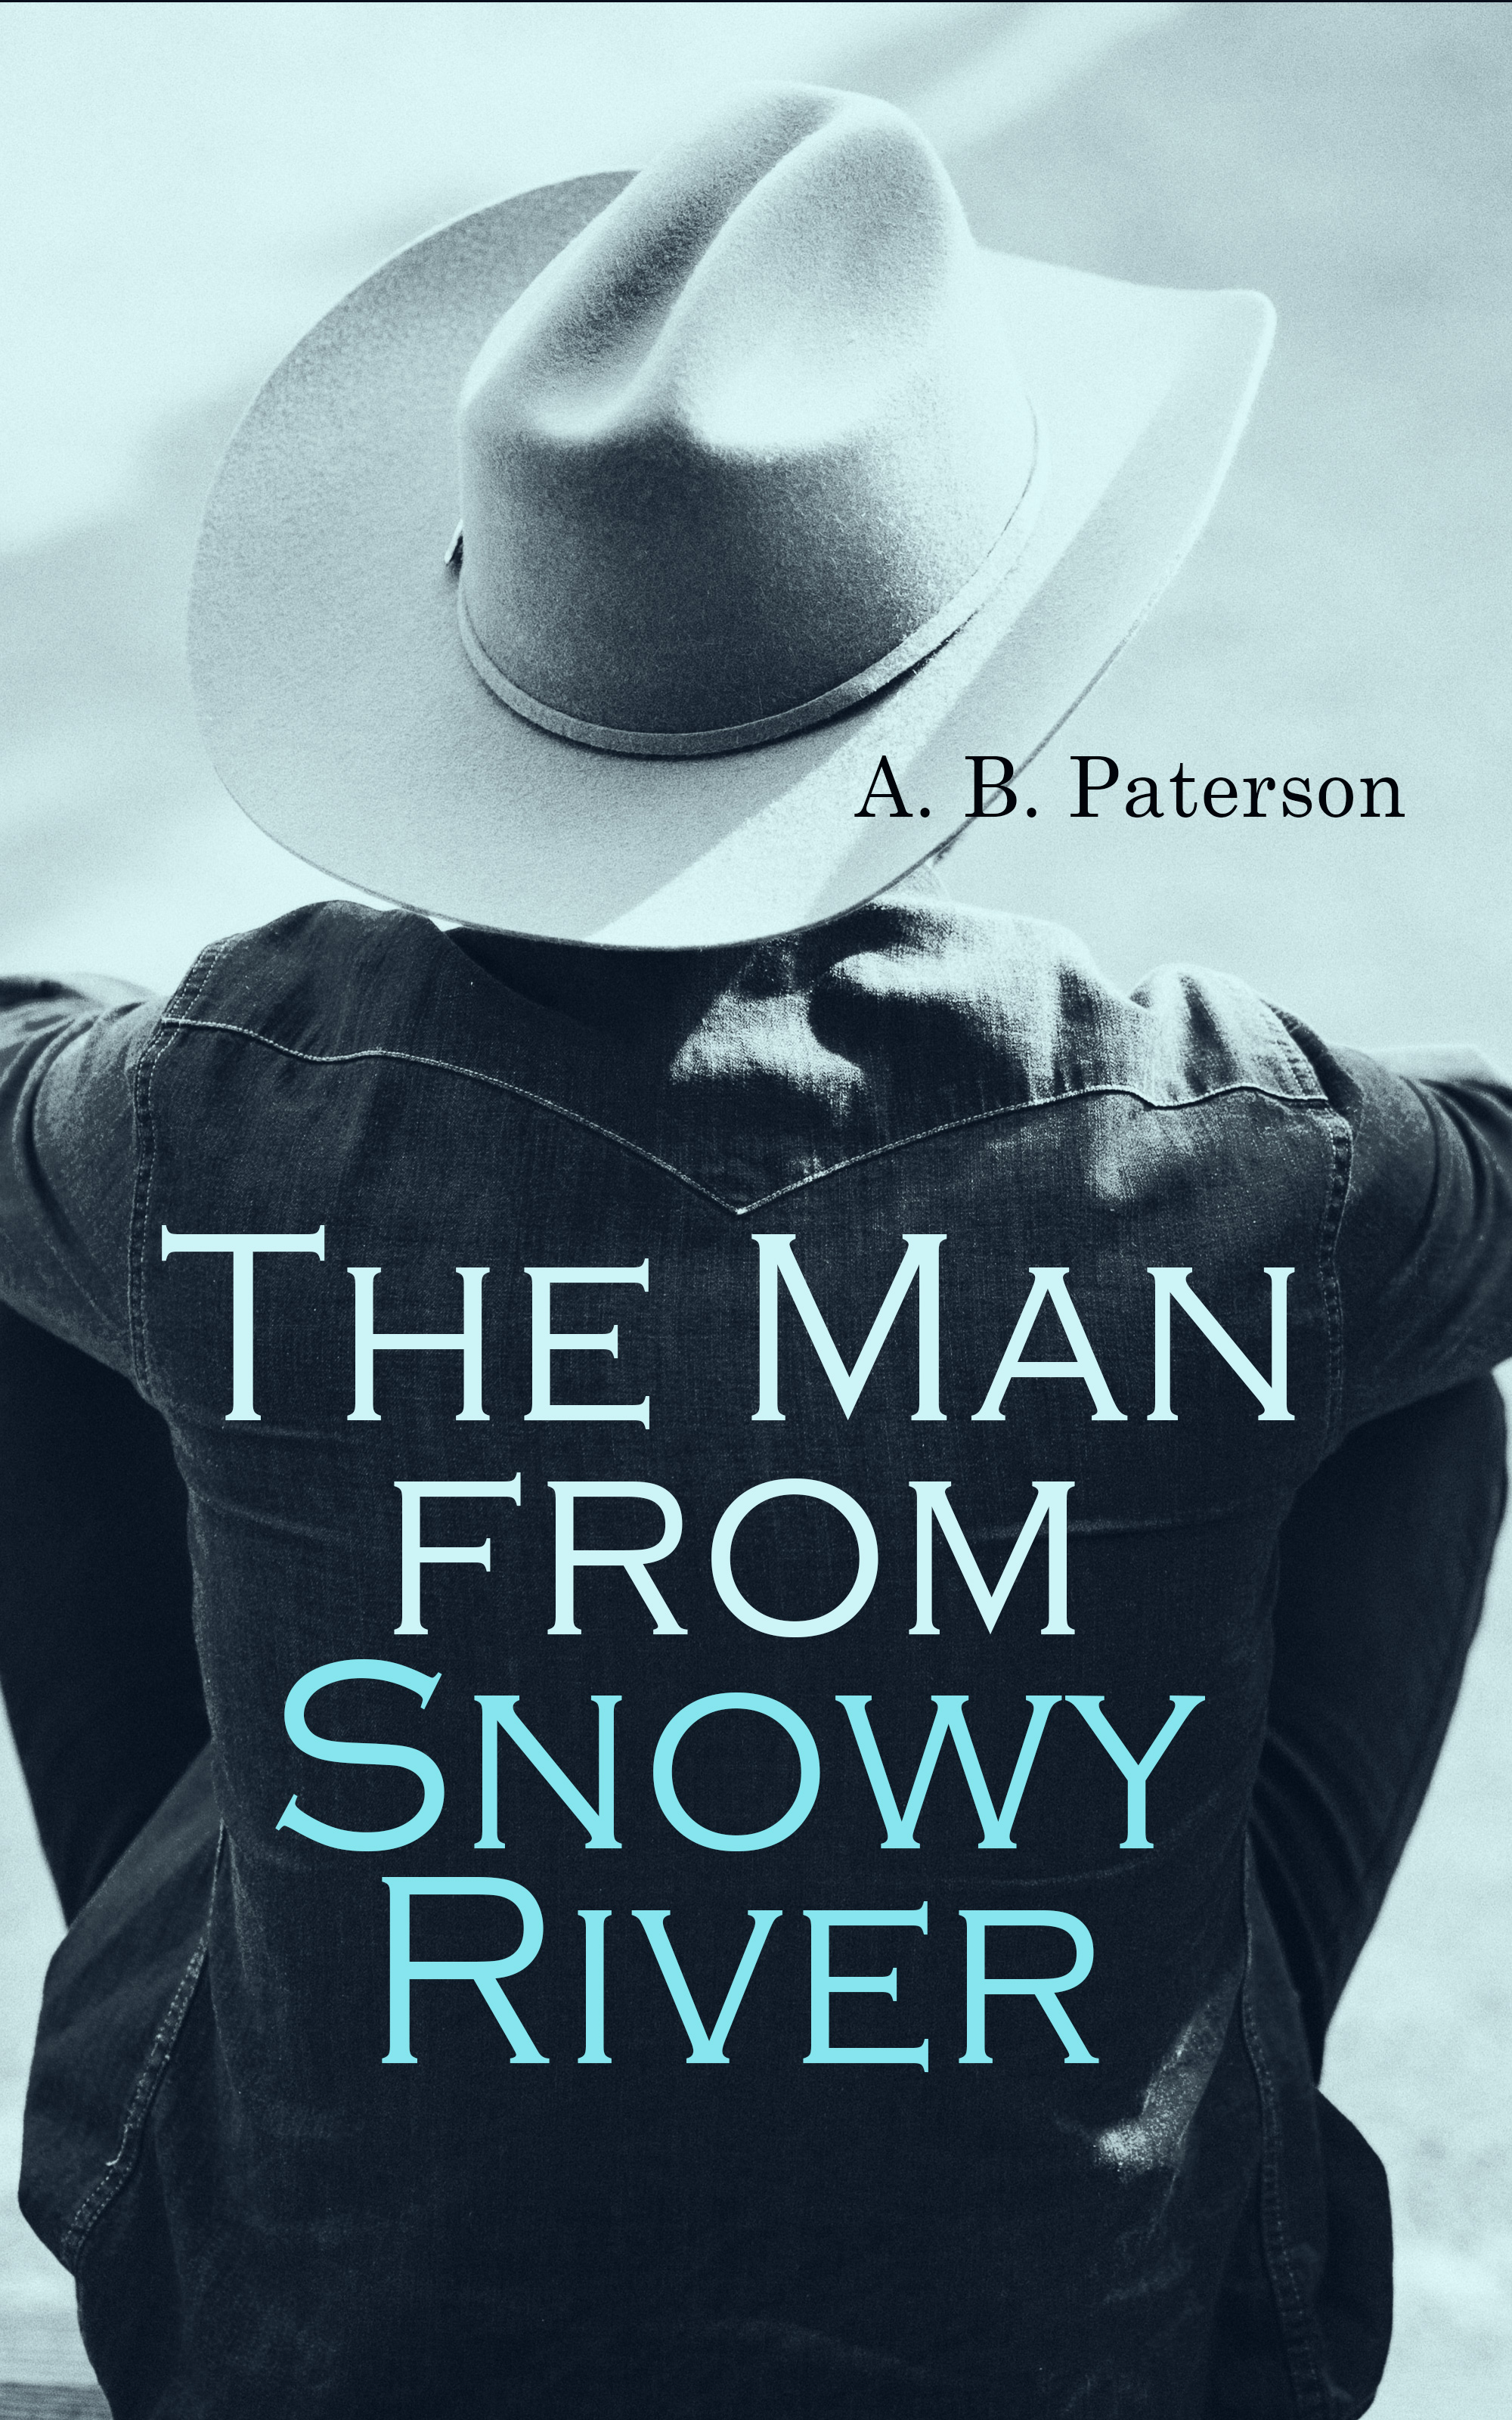 цена на A. B. Paterson The Man from Snowy River